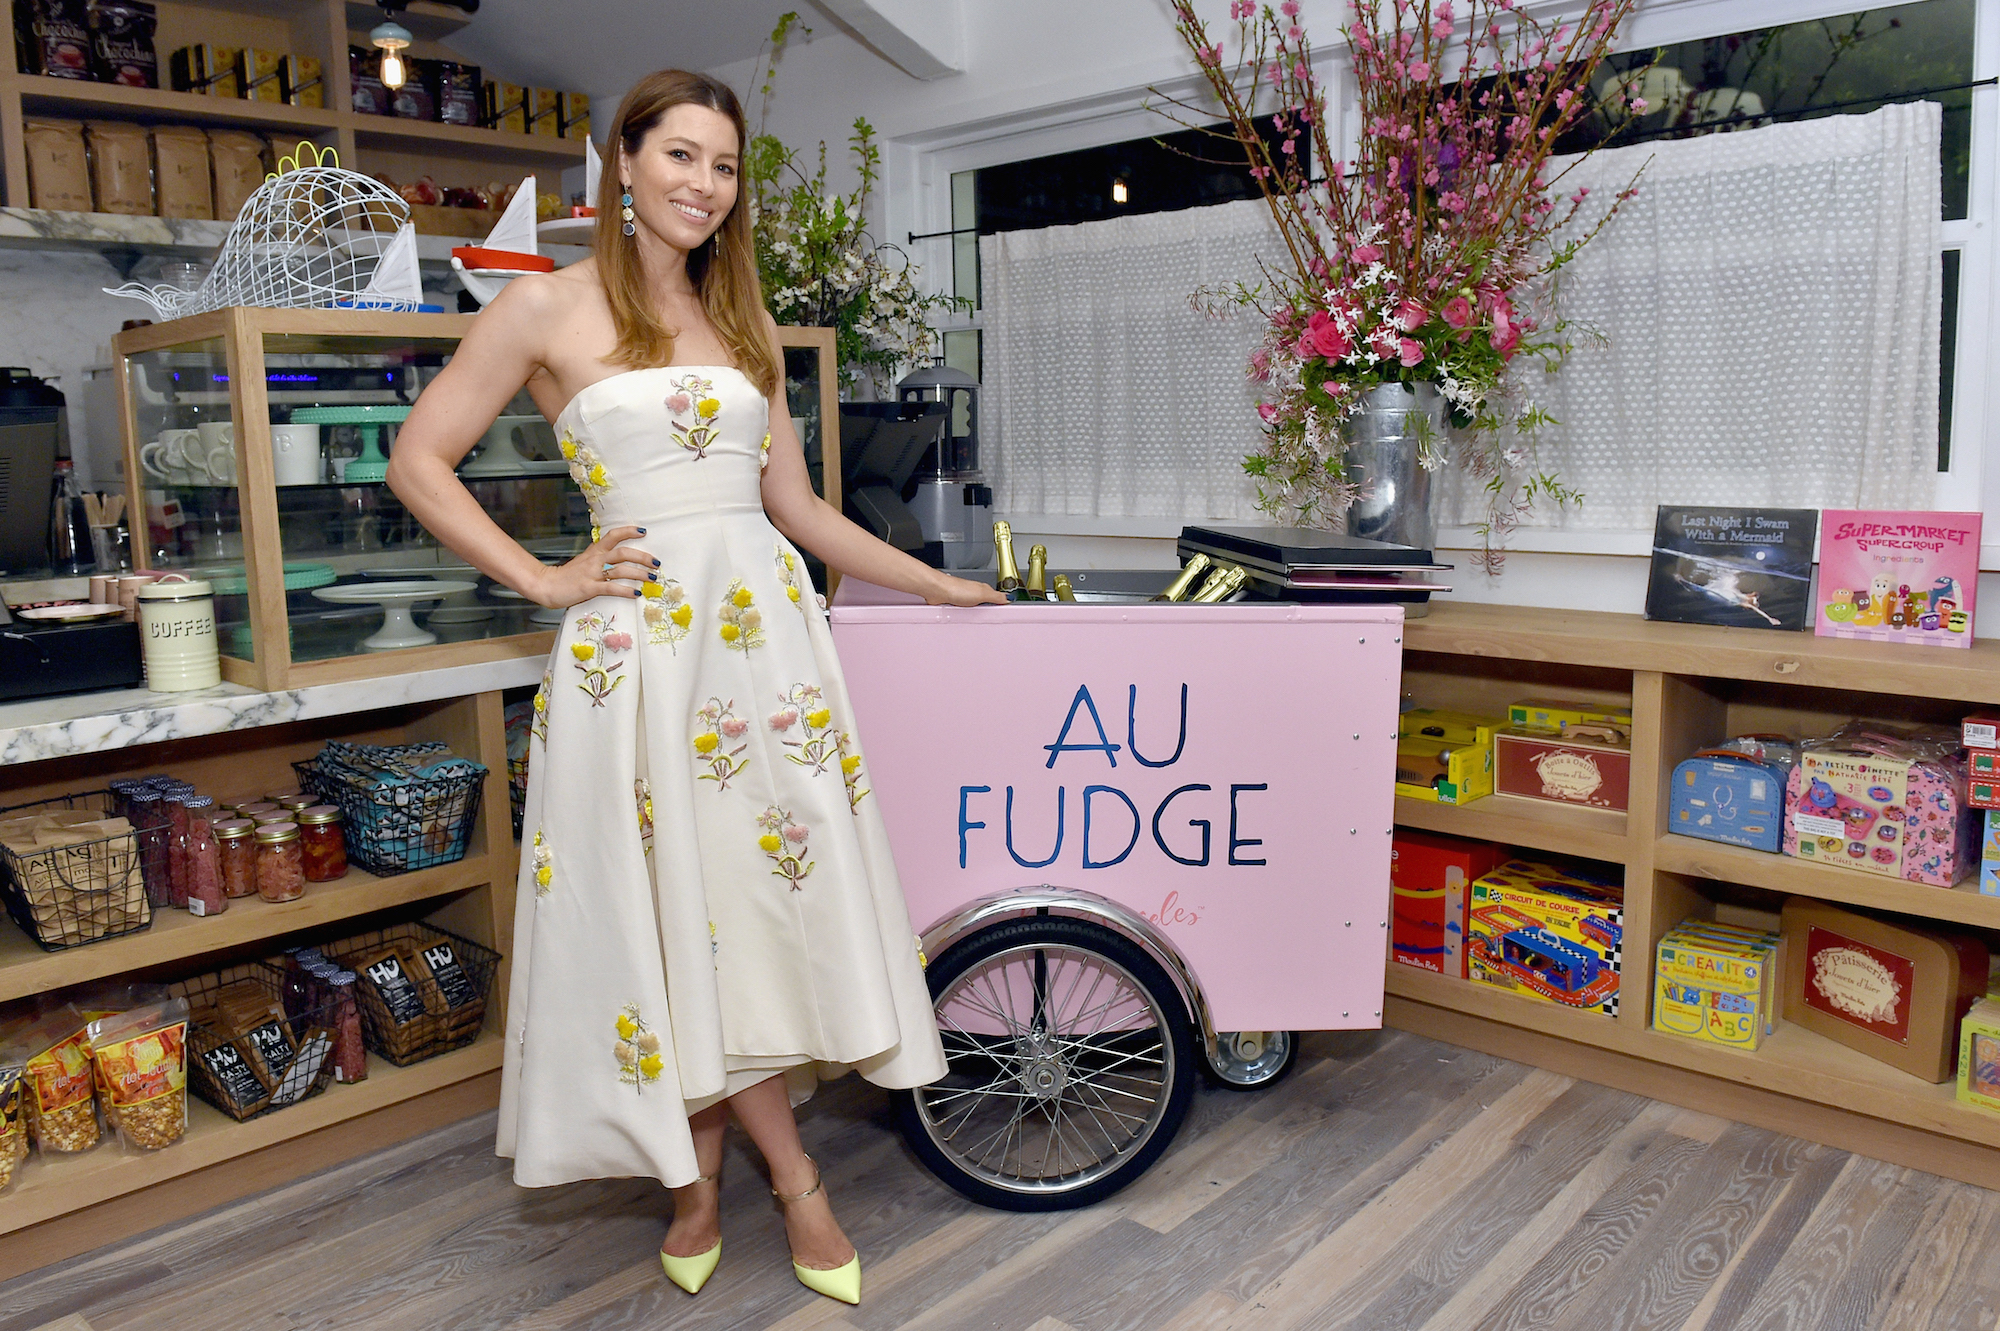 Jessica Biel's Kid-Friendly Restaurant Shuts Down After Two Years